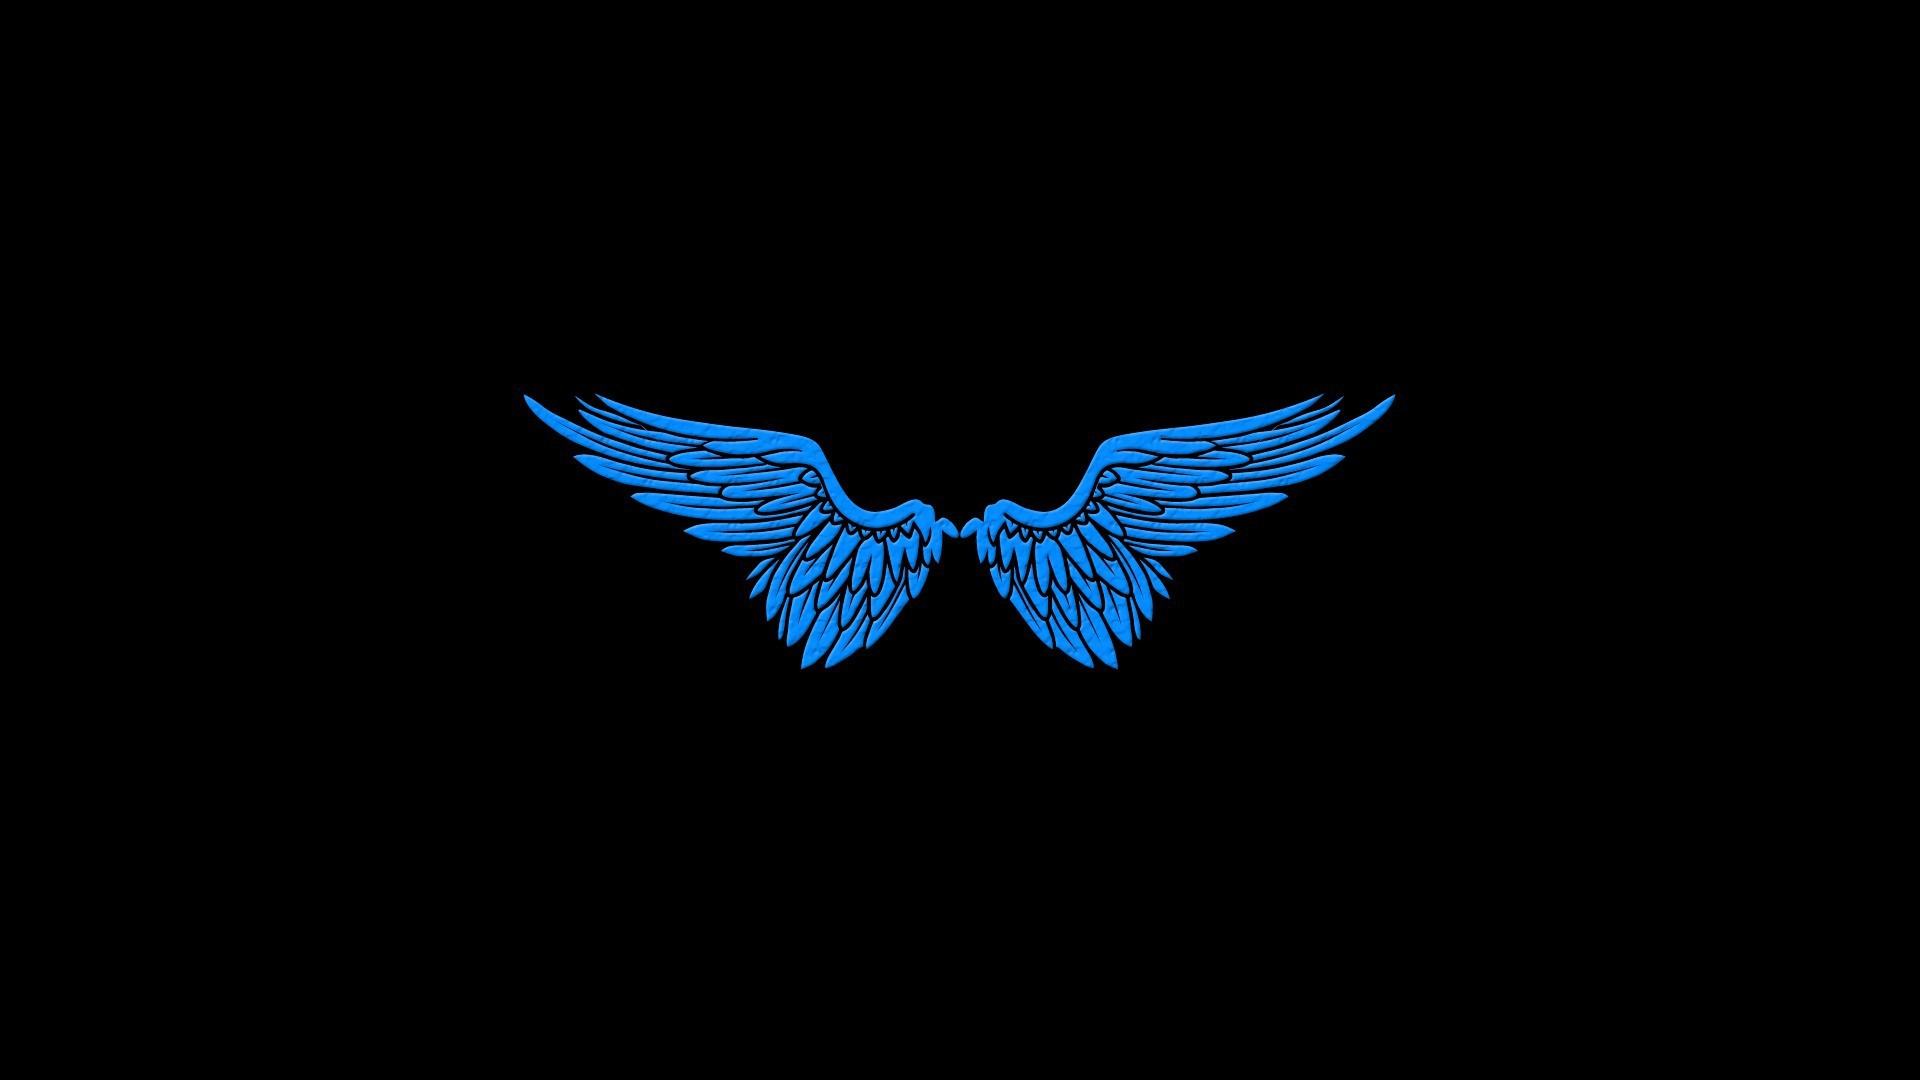 Angels-blue-wings-black-minimalistic-simple-1920x1080-blue-wings-black-minimalistic-simple-v-wallpaper-wpc9002220